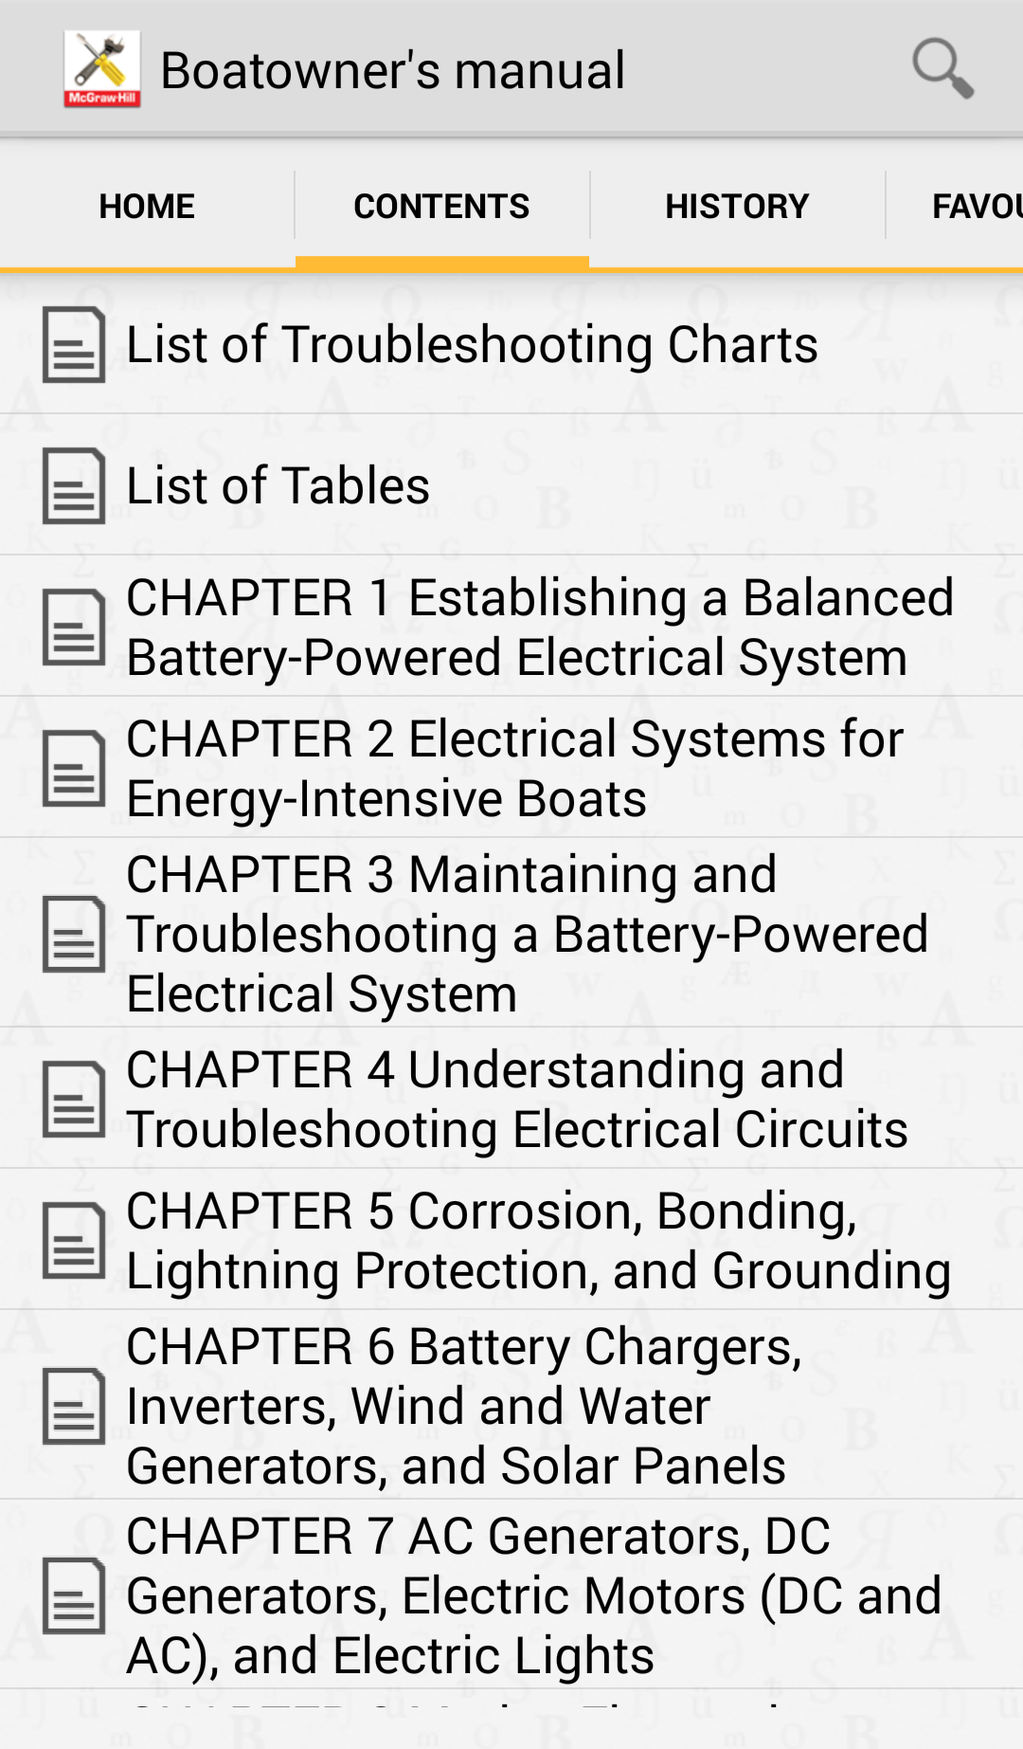 Boatowner's Mechanical and Electrical Manual Screenshot 4